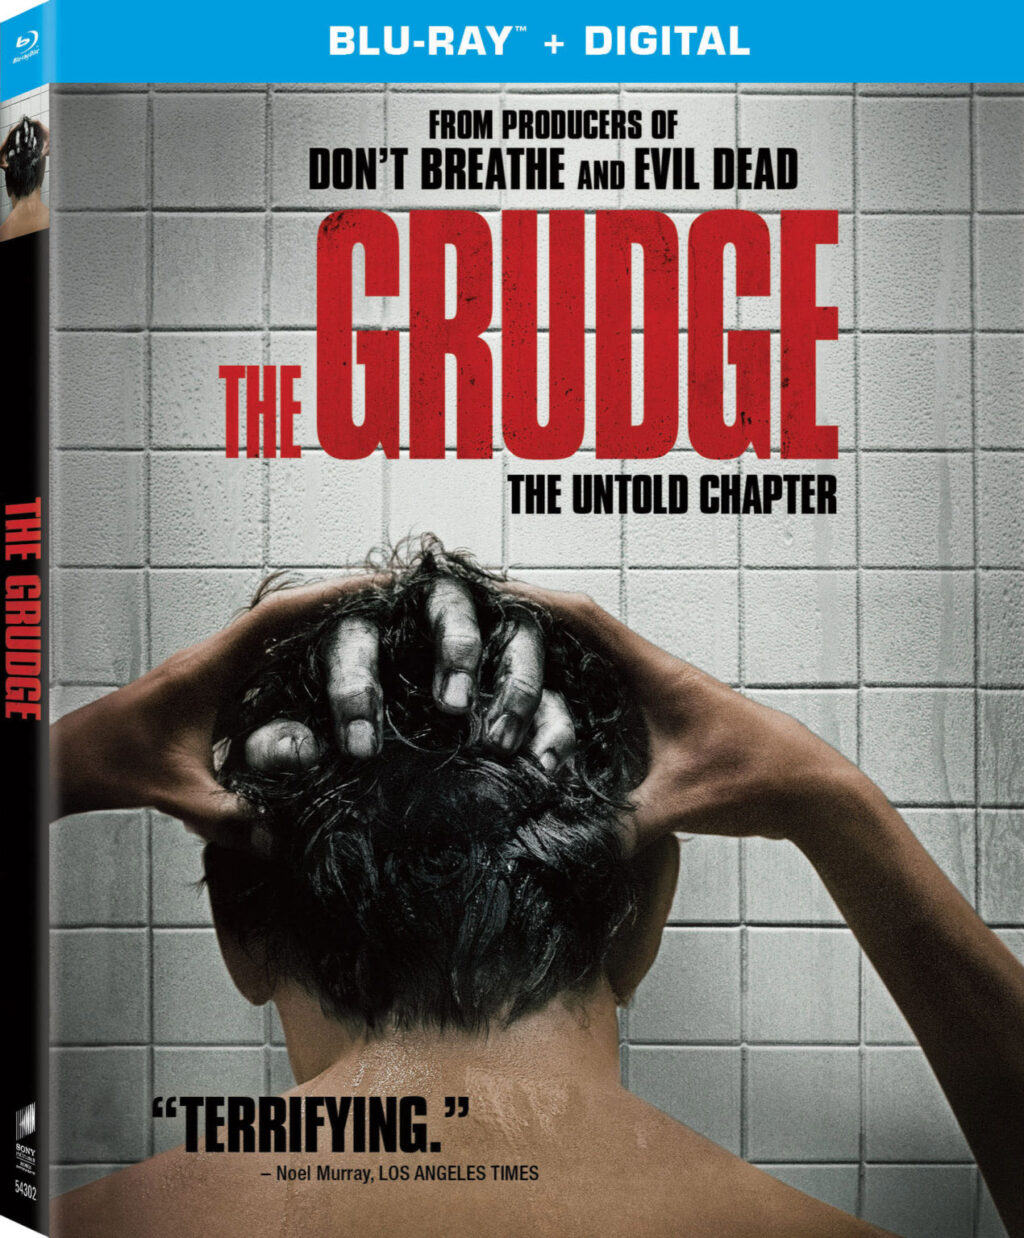 Grudge Blu ray 1024x1238 - New Behind-The-Scenes Clips from THE GRUDGE Now on Blu-Ray